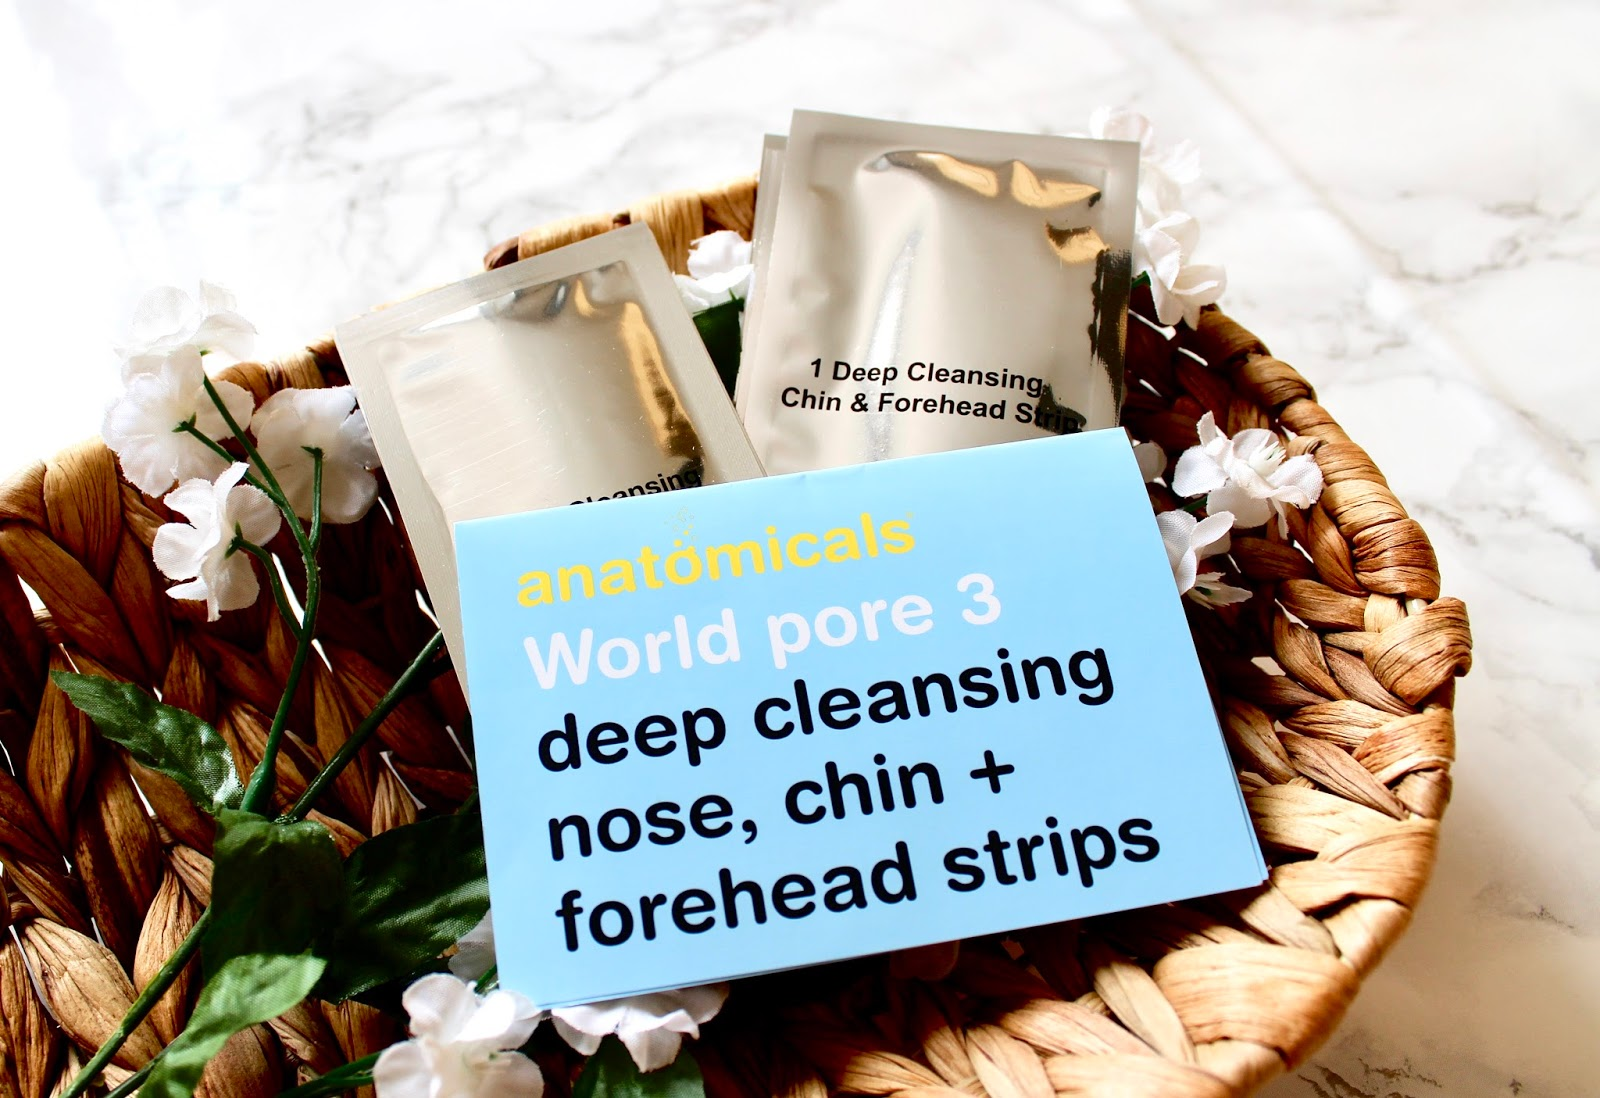 World Pore 3 Deep Cleansing Nose, Chin & Forehead Strips